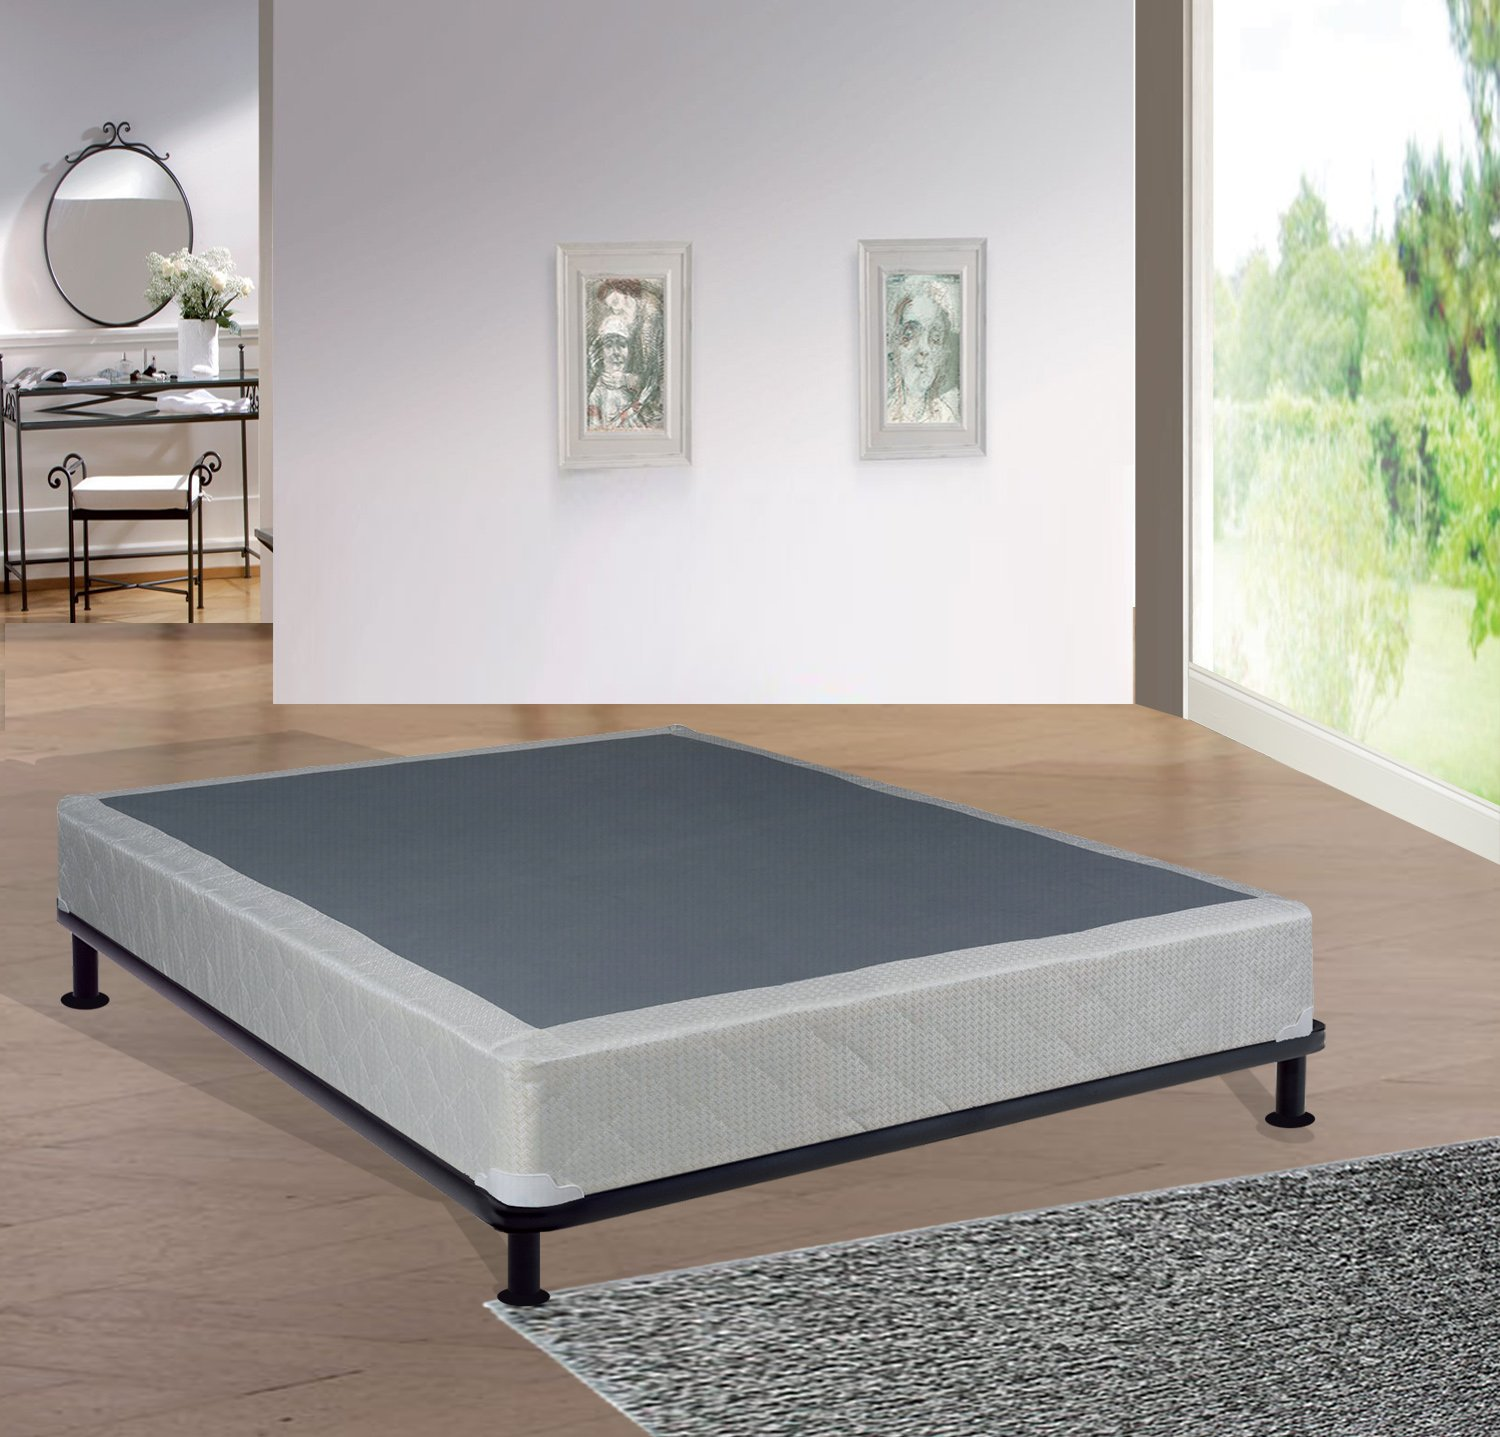 Foundation Box Spring for Mattress by Spring Solution